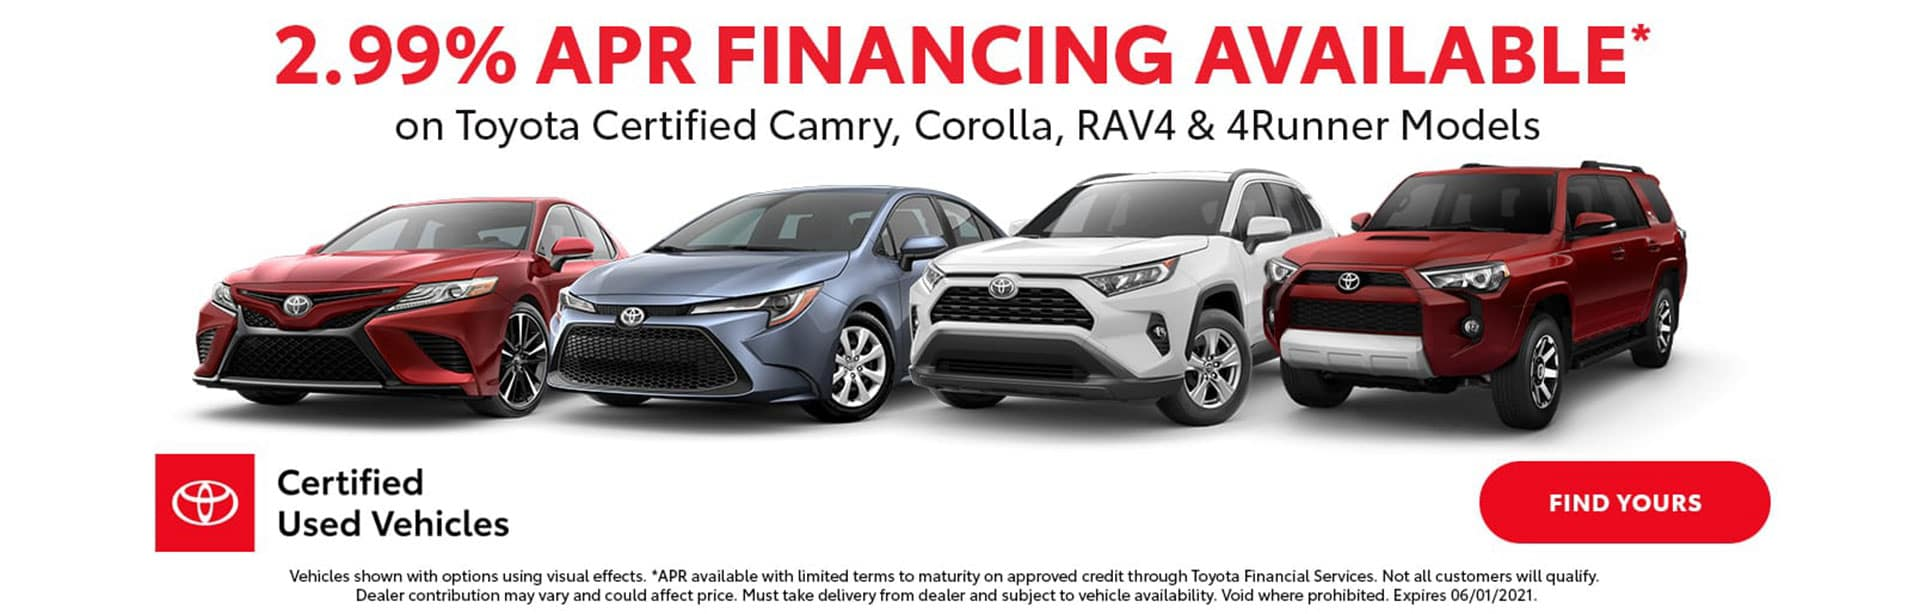 2.99% APR Financing on select Certified Used Vehicles